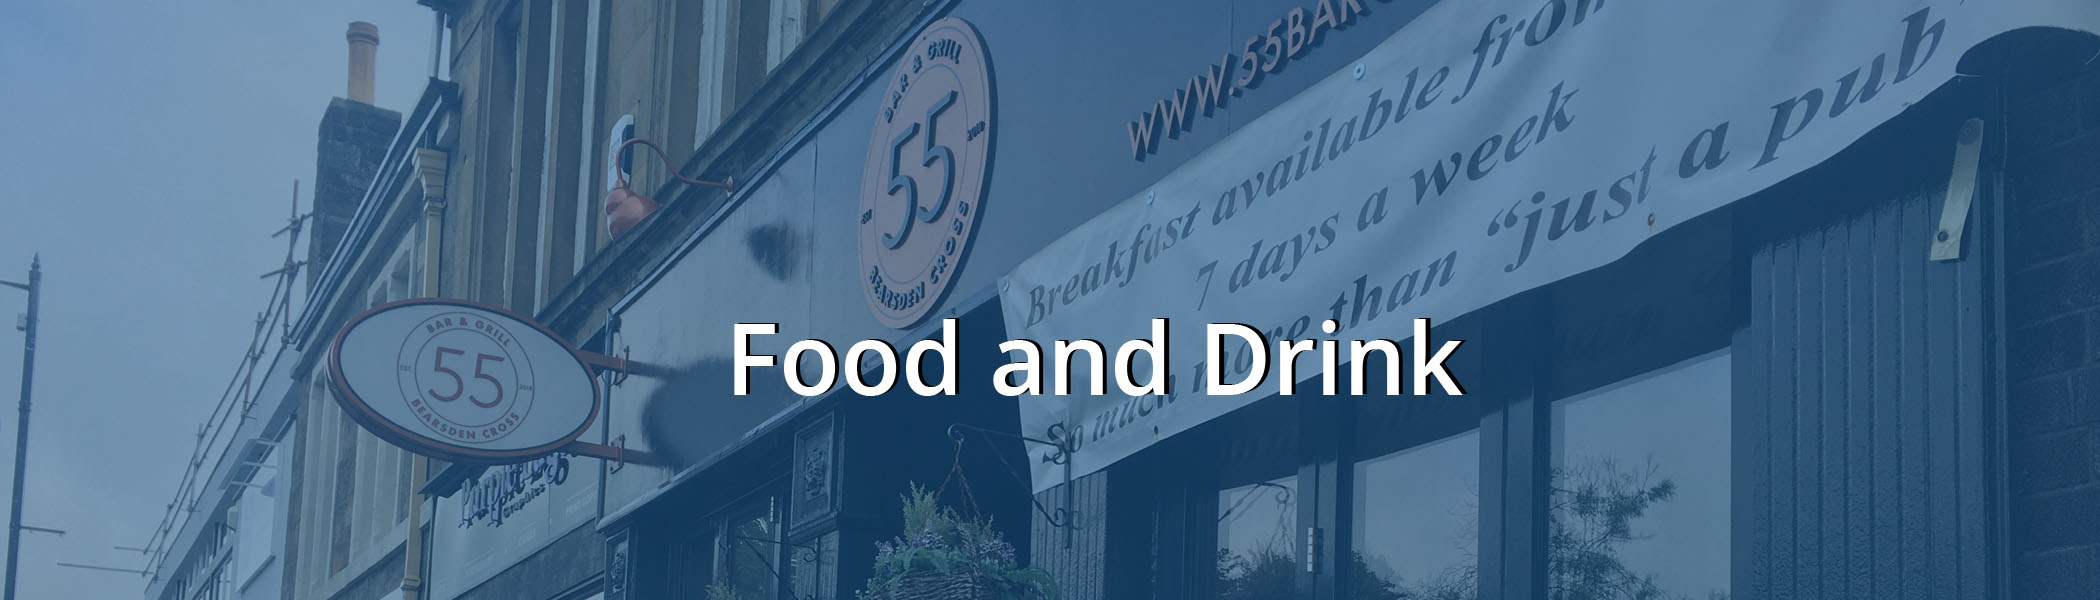 Bearsden Loves Local Food and Drink